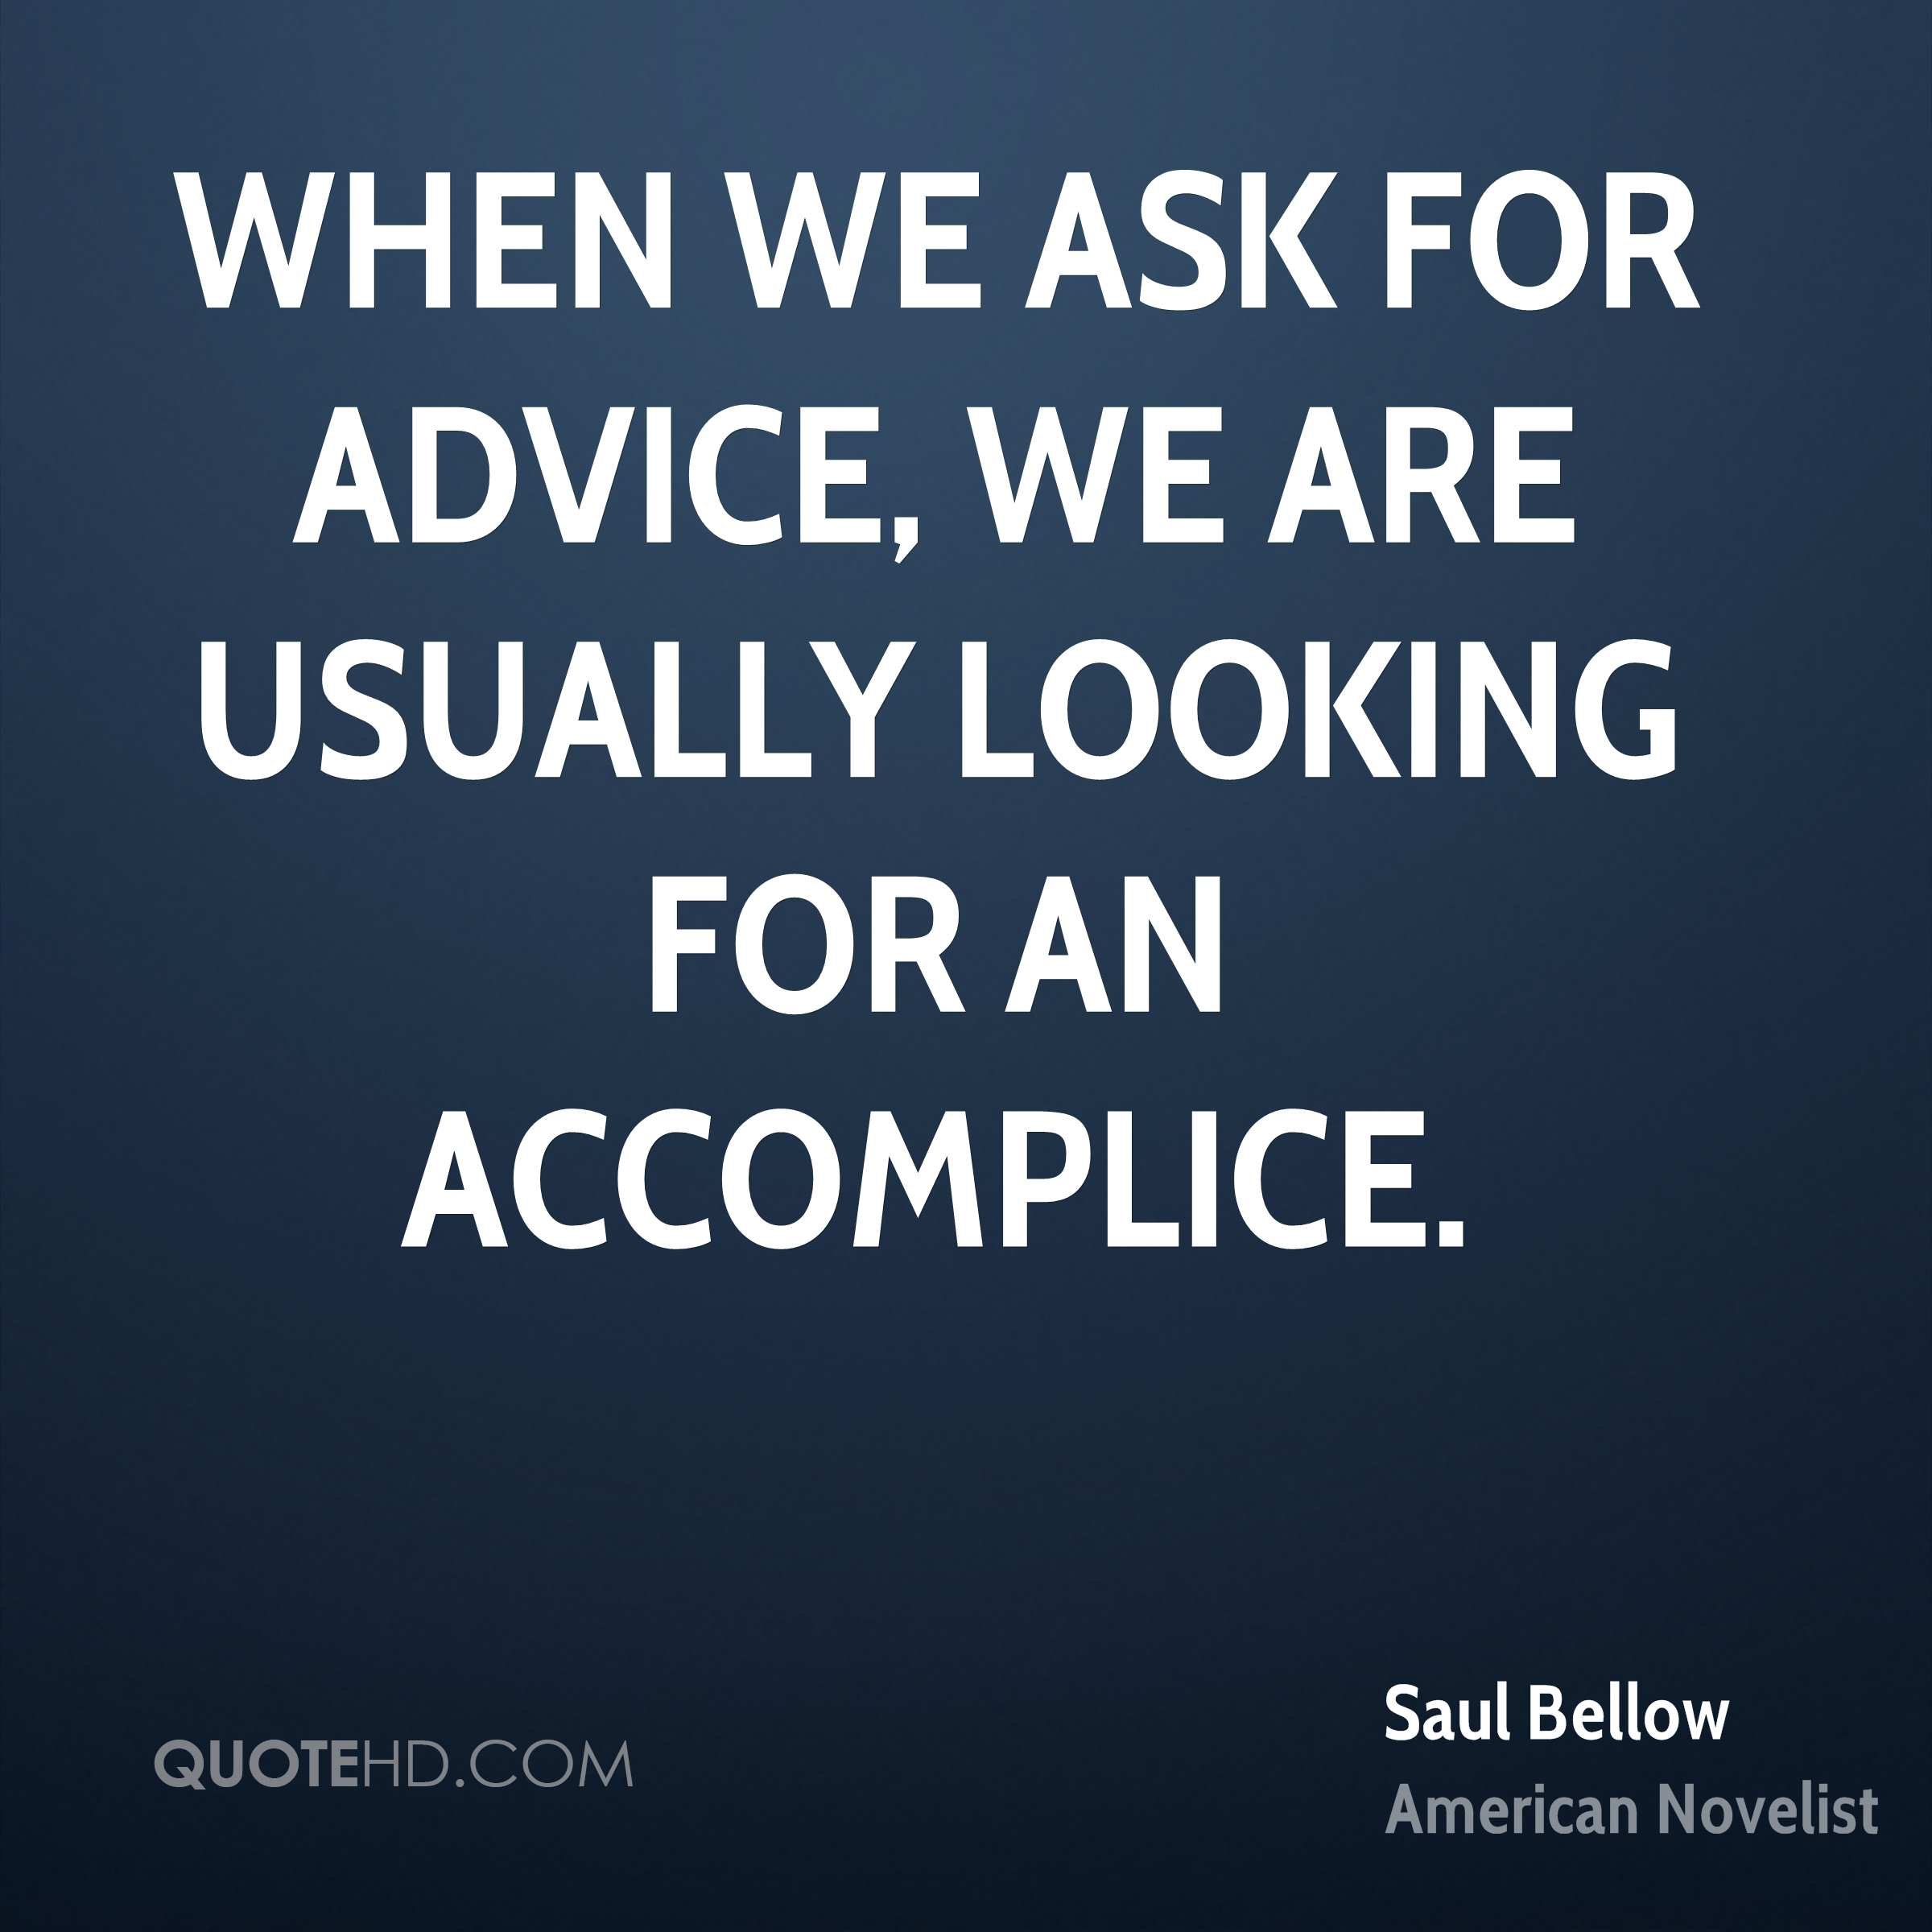 When we ask for advice, we are usually looking for an accomplice.